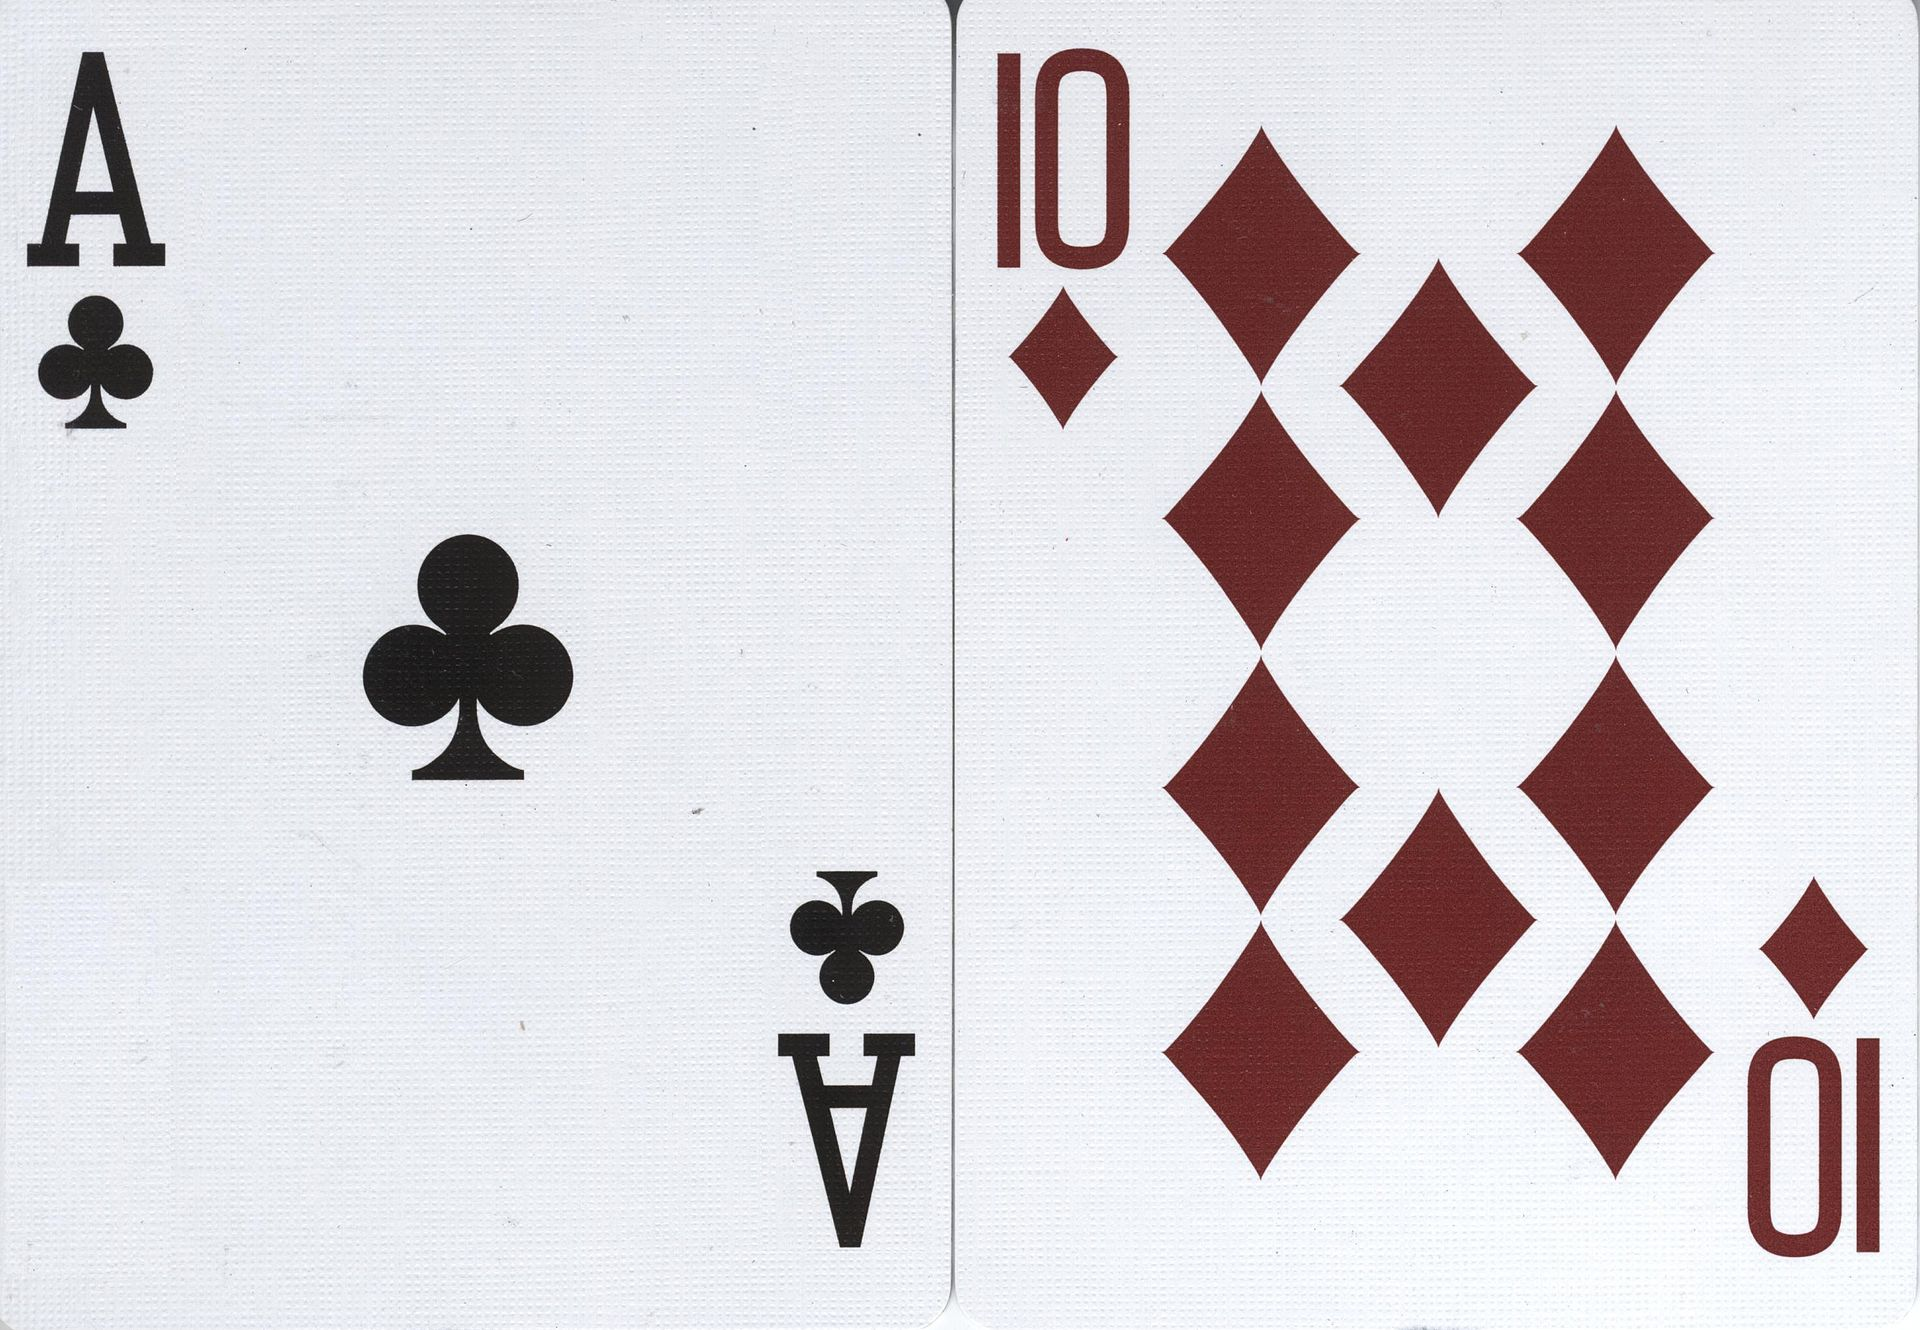 What actions of blackjack players lead to losses?